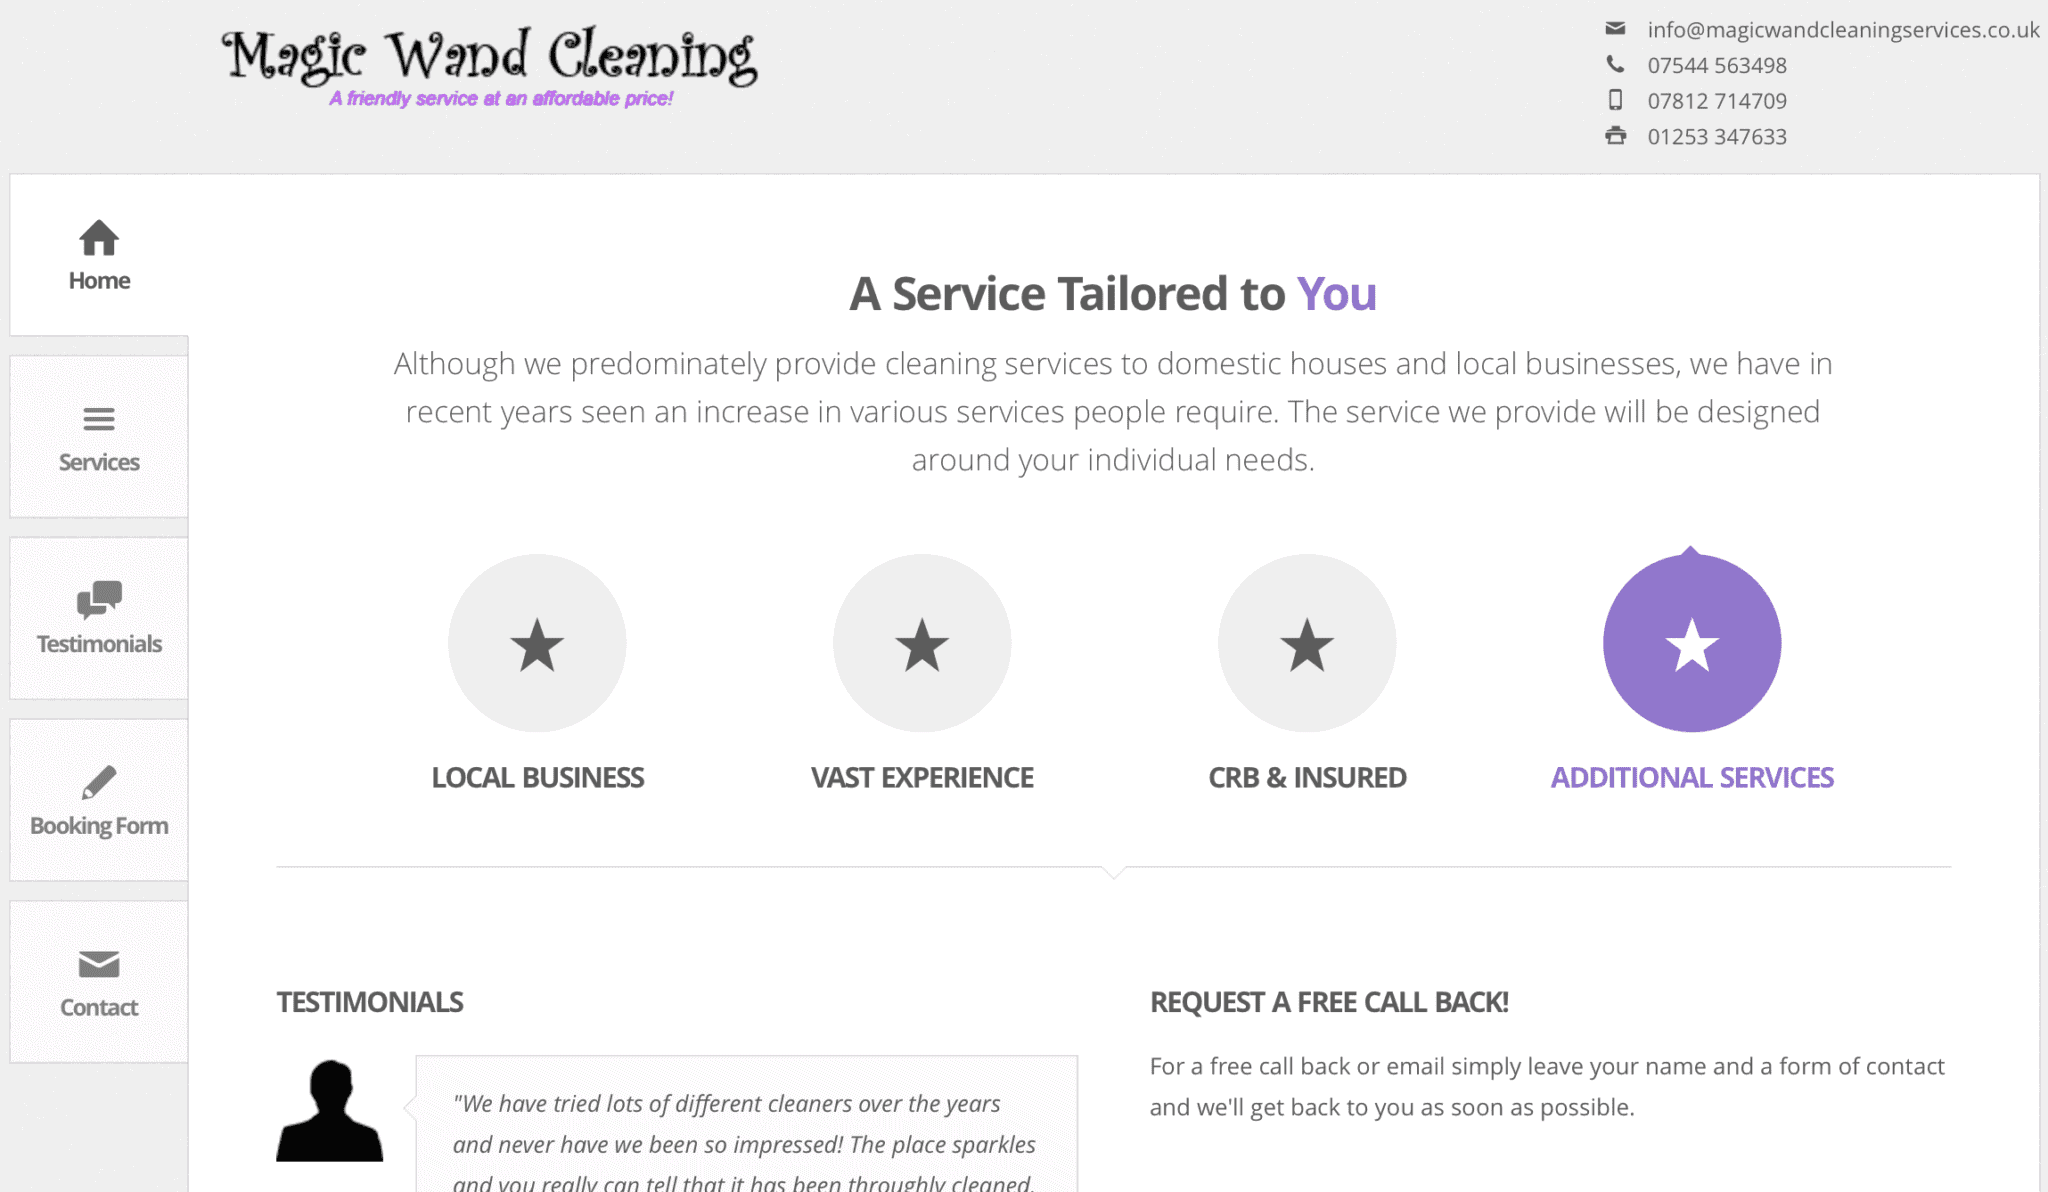 Magic Wand Cleaning Services